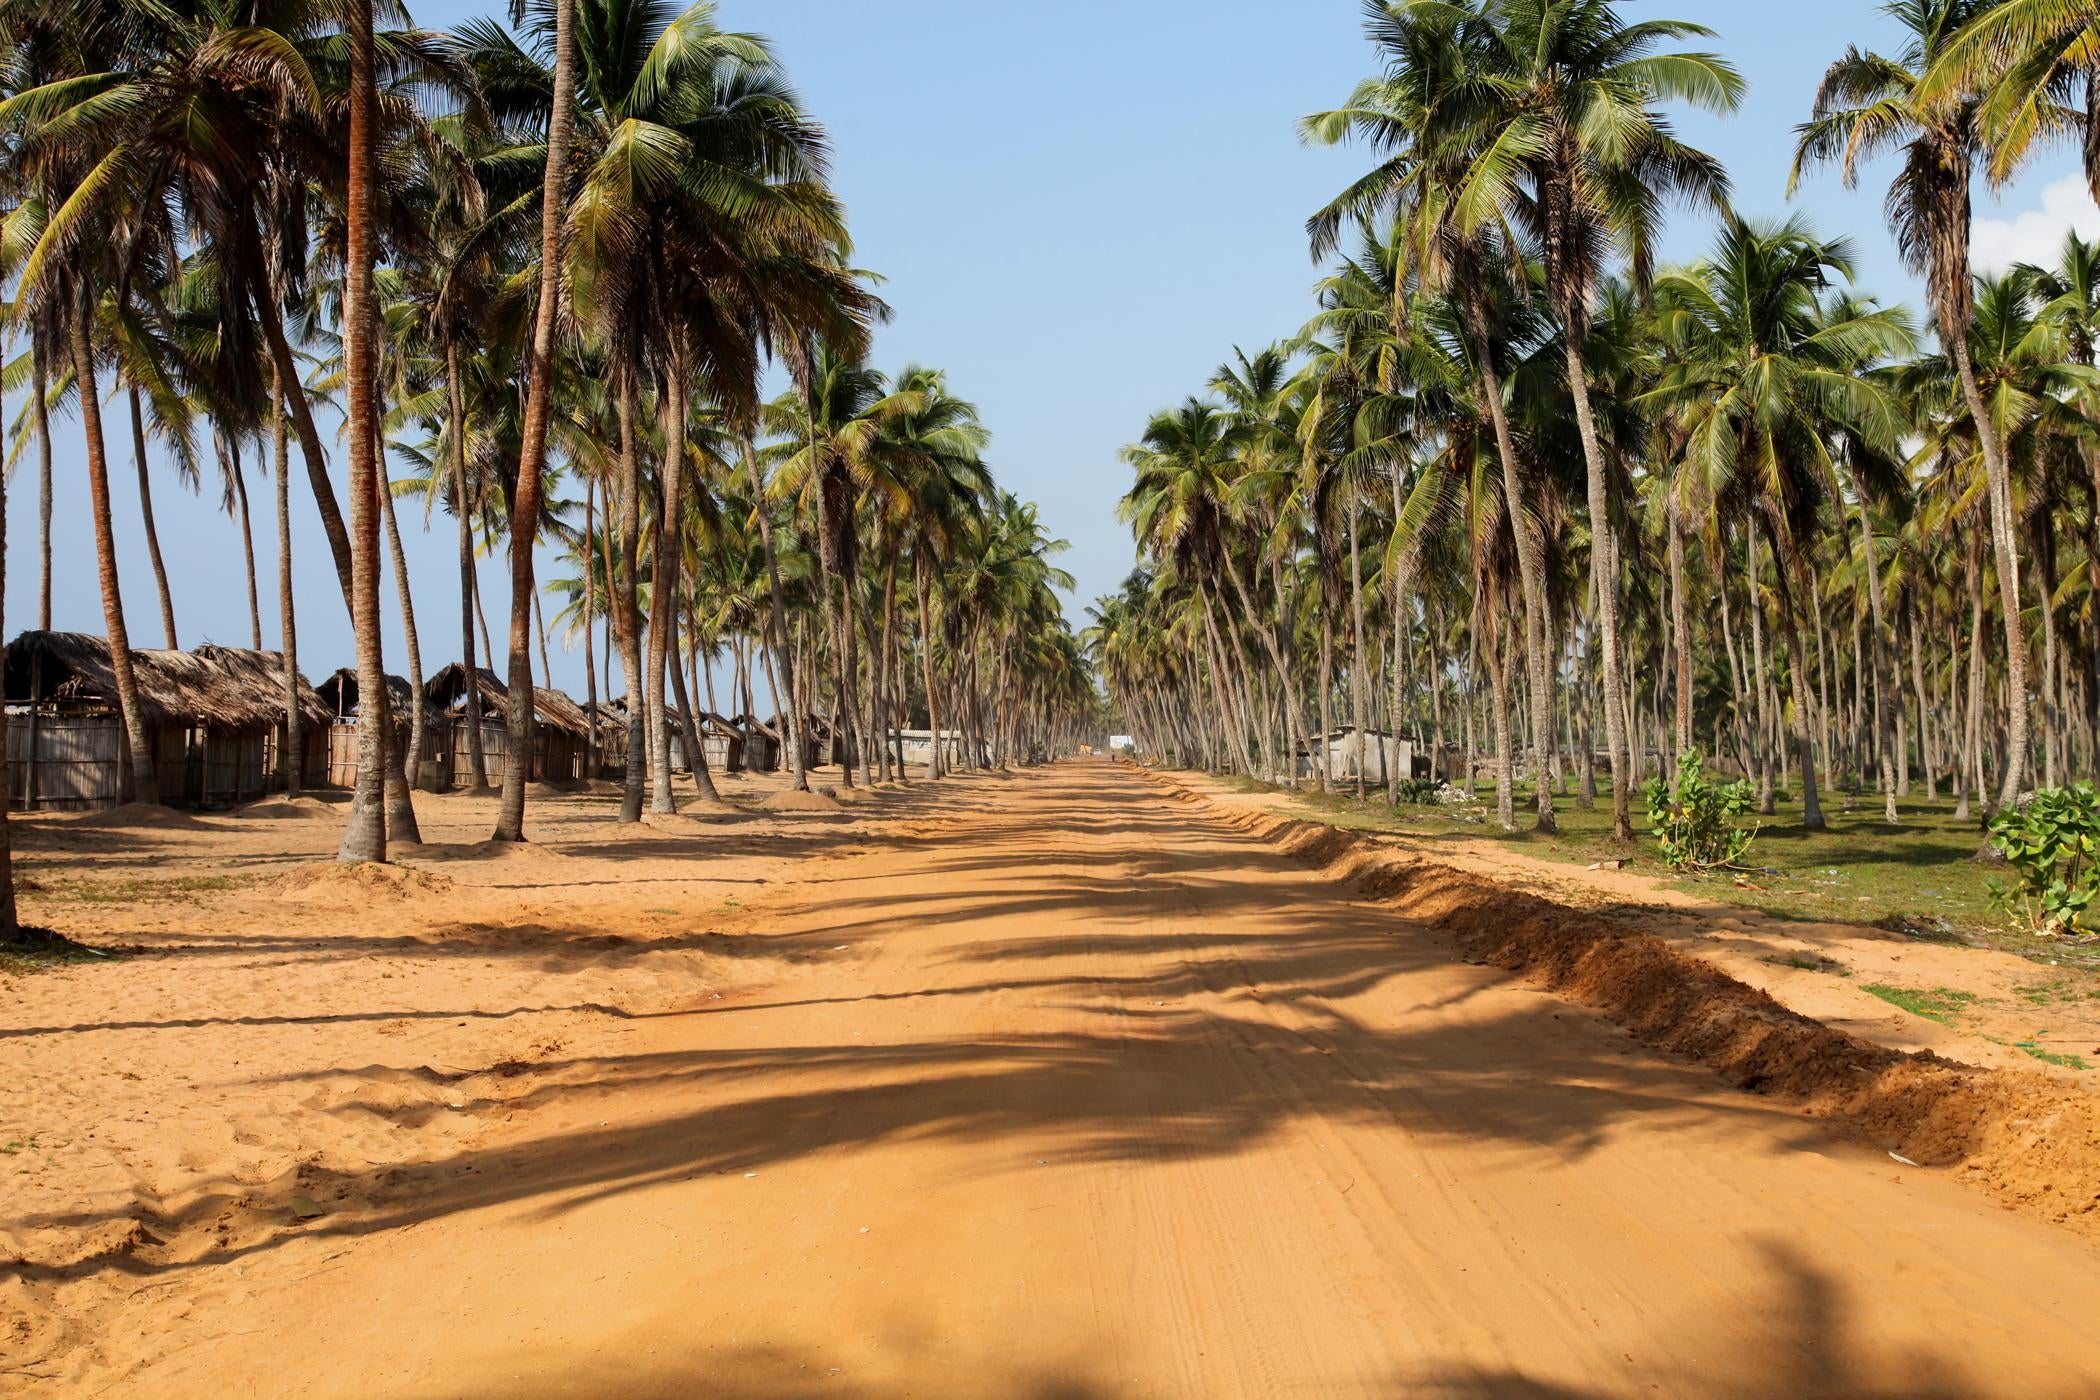 Vegetation in Cotonou